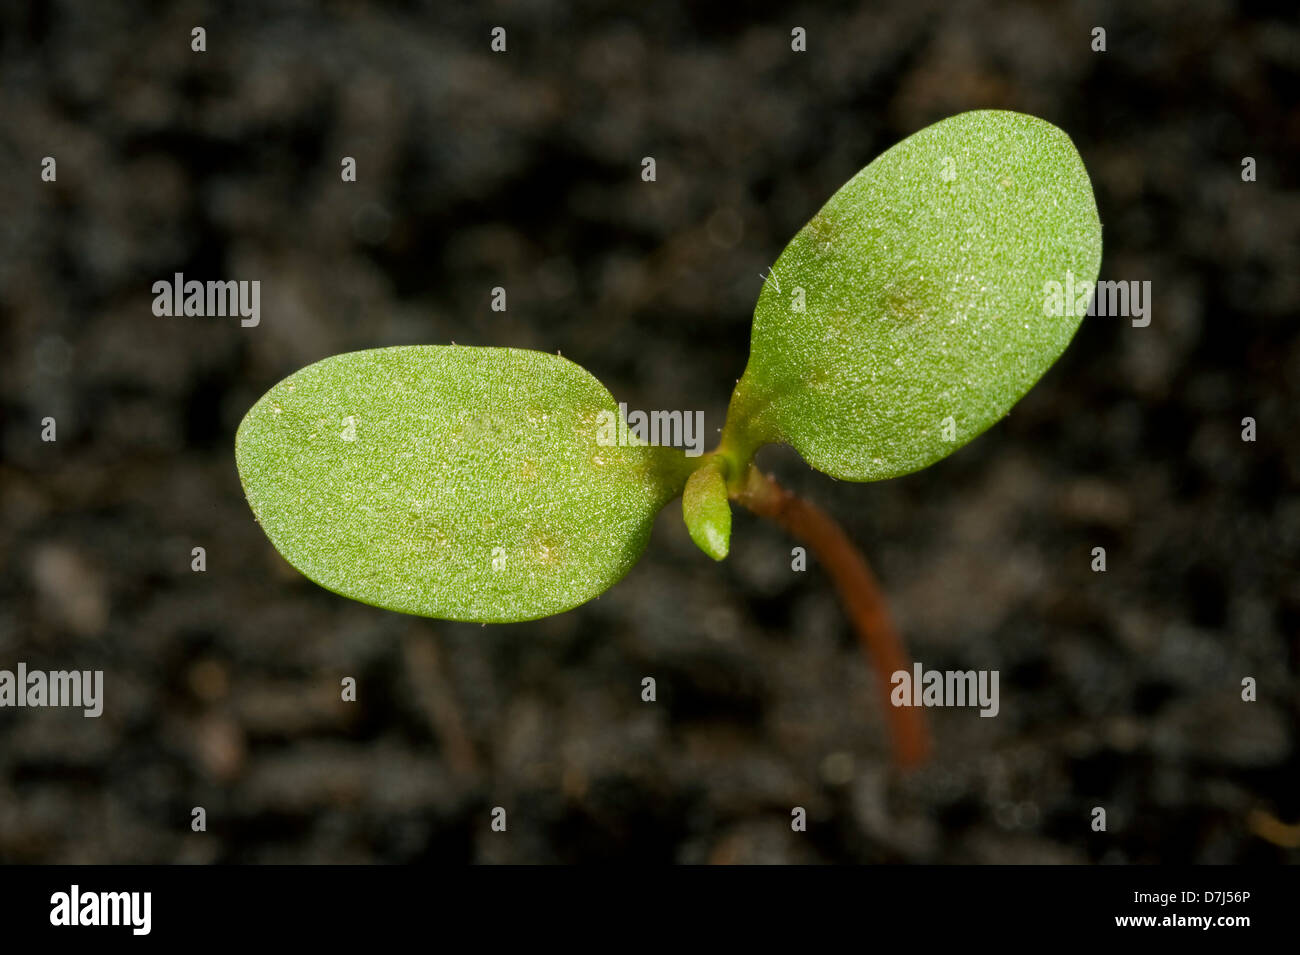 Redshank, Polygonum maculosa, seedling cotyledons only - Stock Image